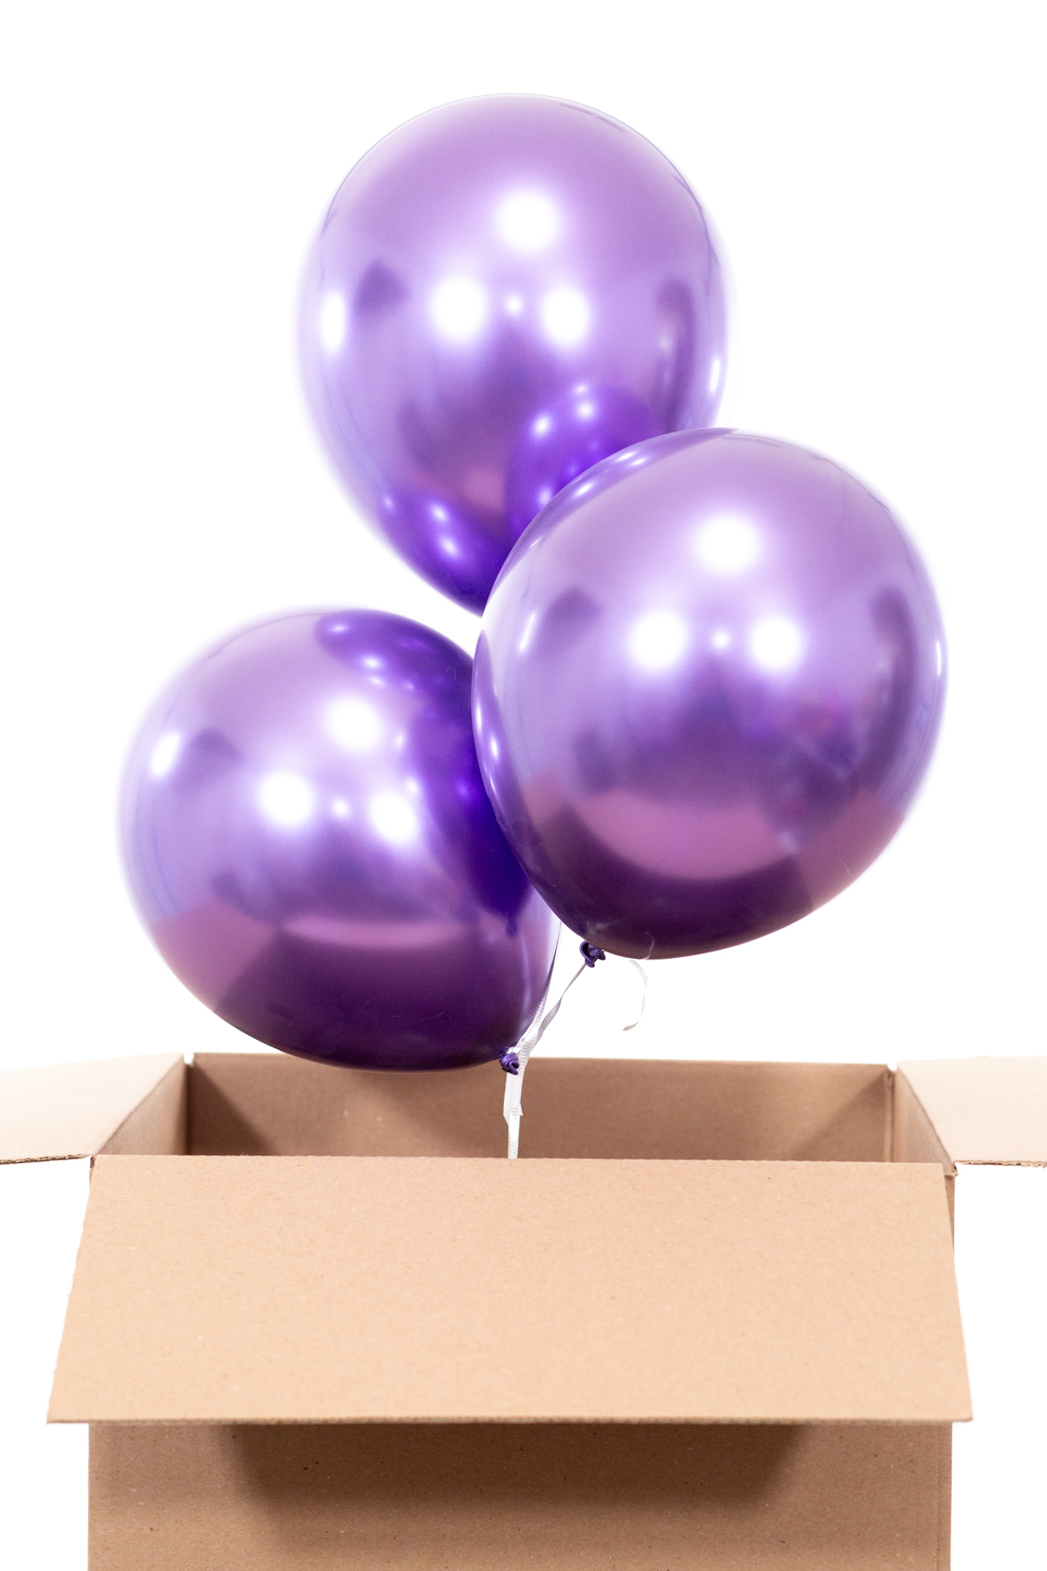 putting balloons into cardboard box to gift to friends